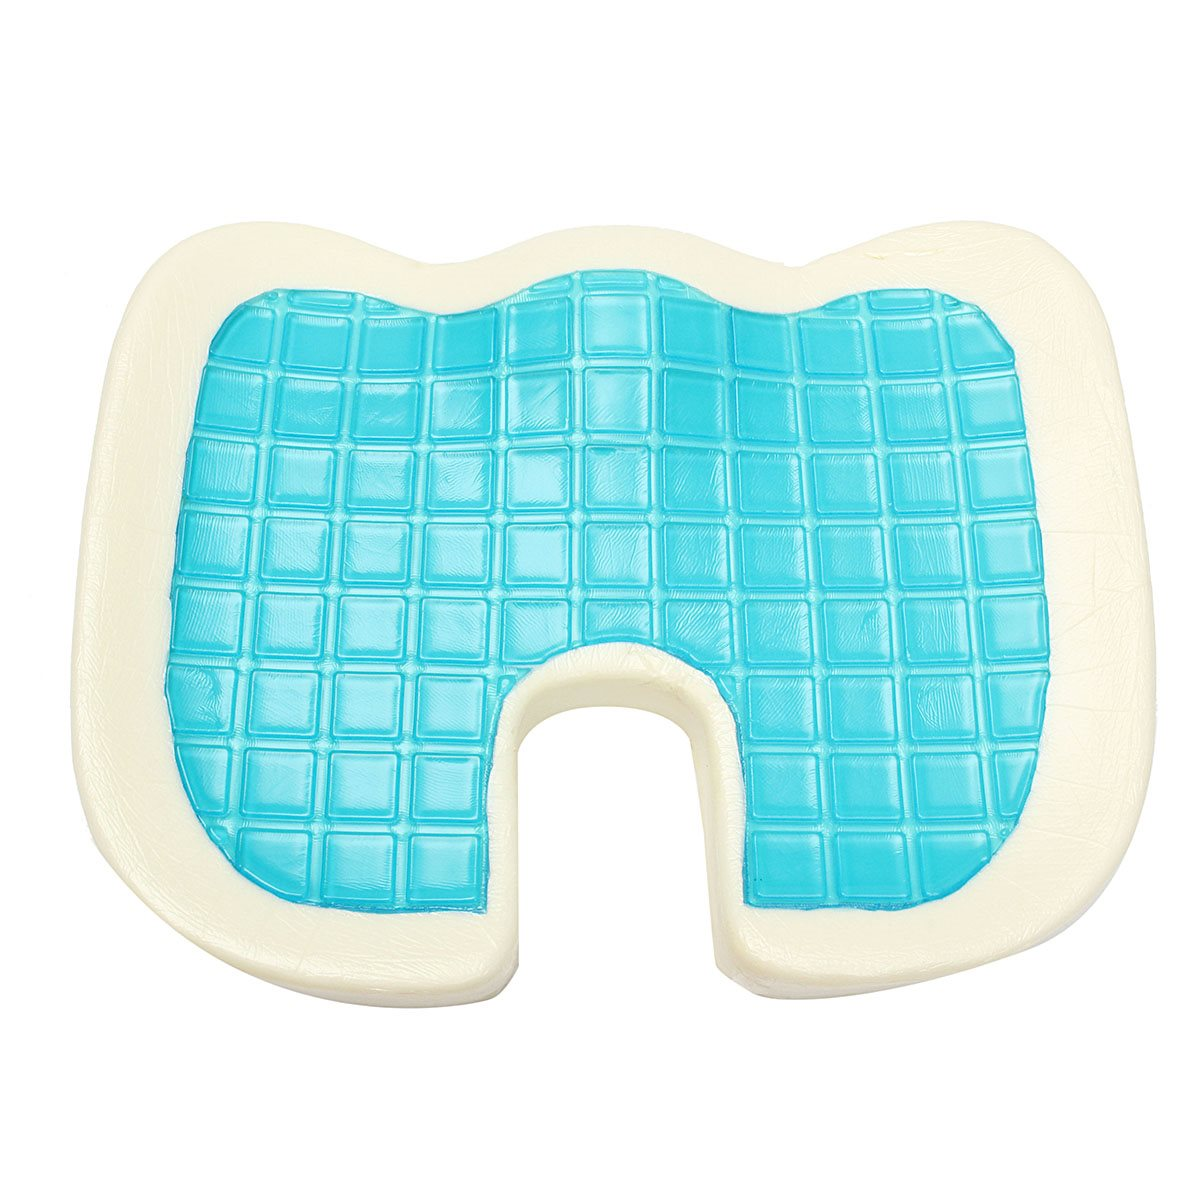 46x35x7 5cm Memory Foam Blue White Cooling Cushion Comfort Gel Seat Chair  Pillow BeautifulCompare Prices on Blue Chair Pads  Online Shopping Buy Low Price  . Gel Chair Pads And Cushions. Home Design Ideas